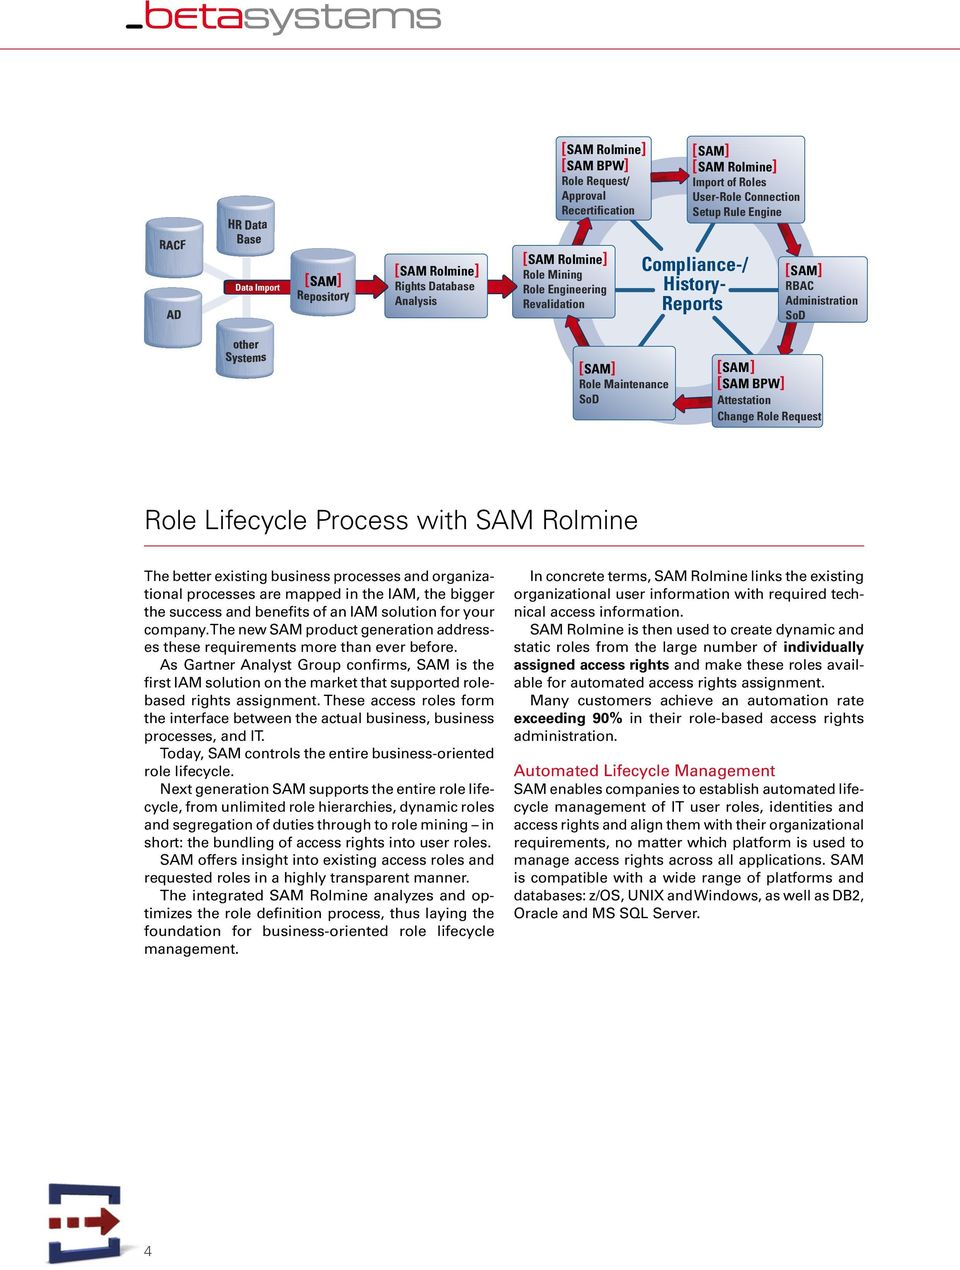 Lifecycle Process with SAM Rolmine The better existing business processes and organizational processes are mapped in the IAM, the bigger the success and benefits of an IAM solution for your company.